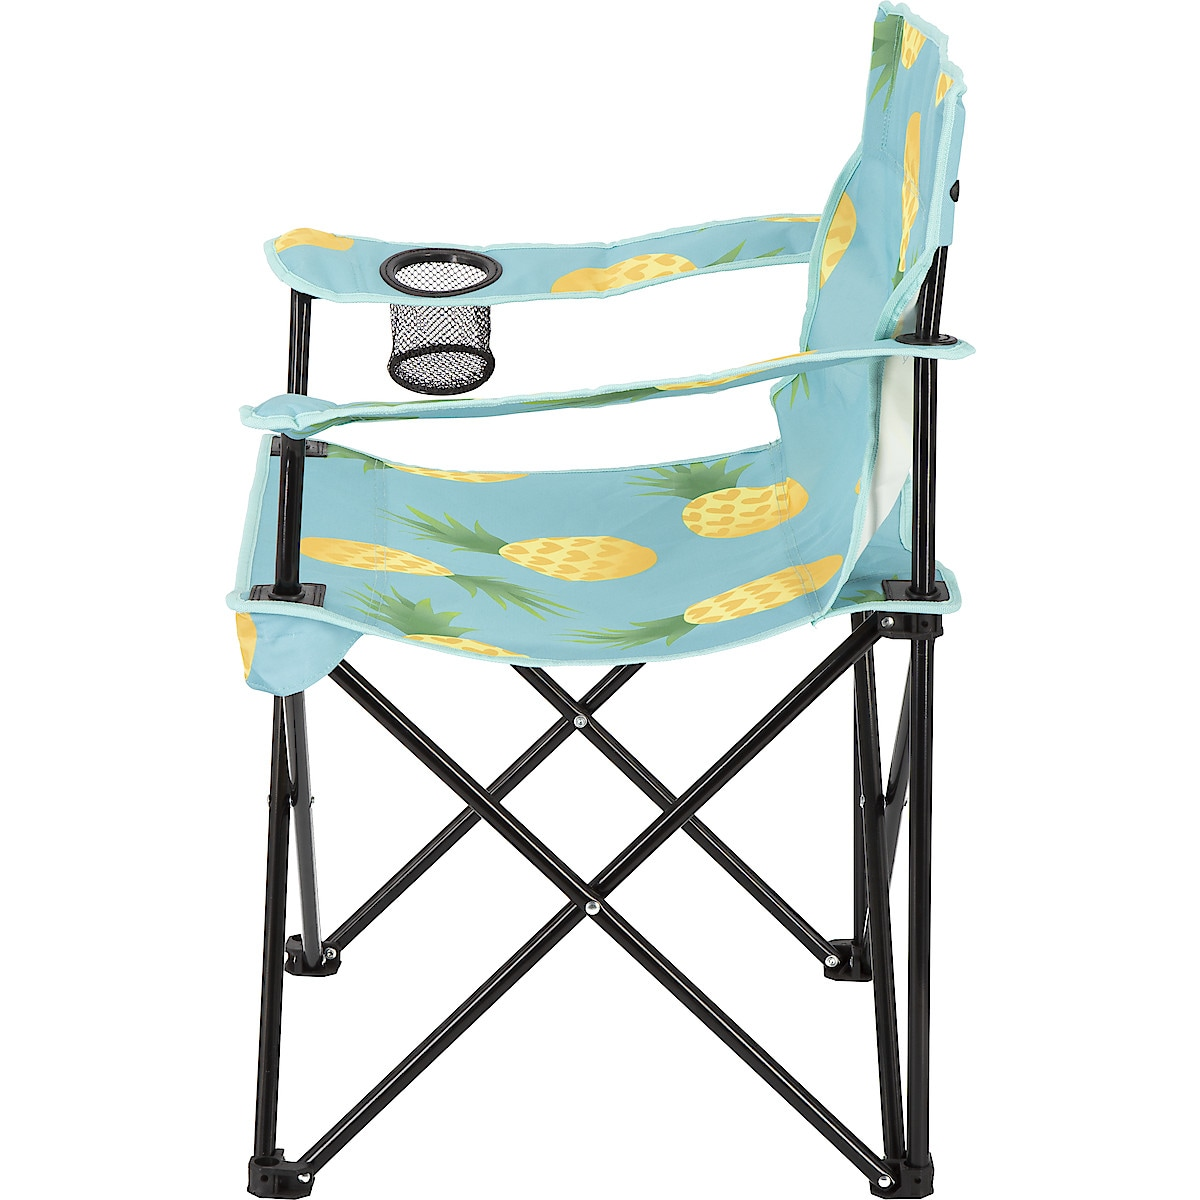 Camping Chair Clas Ohlson